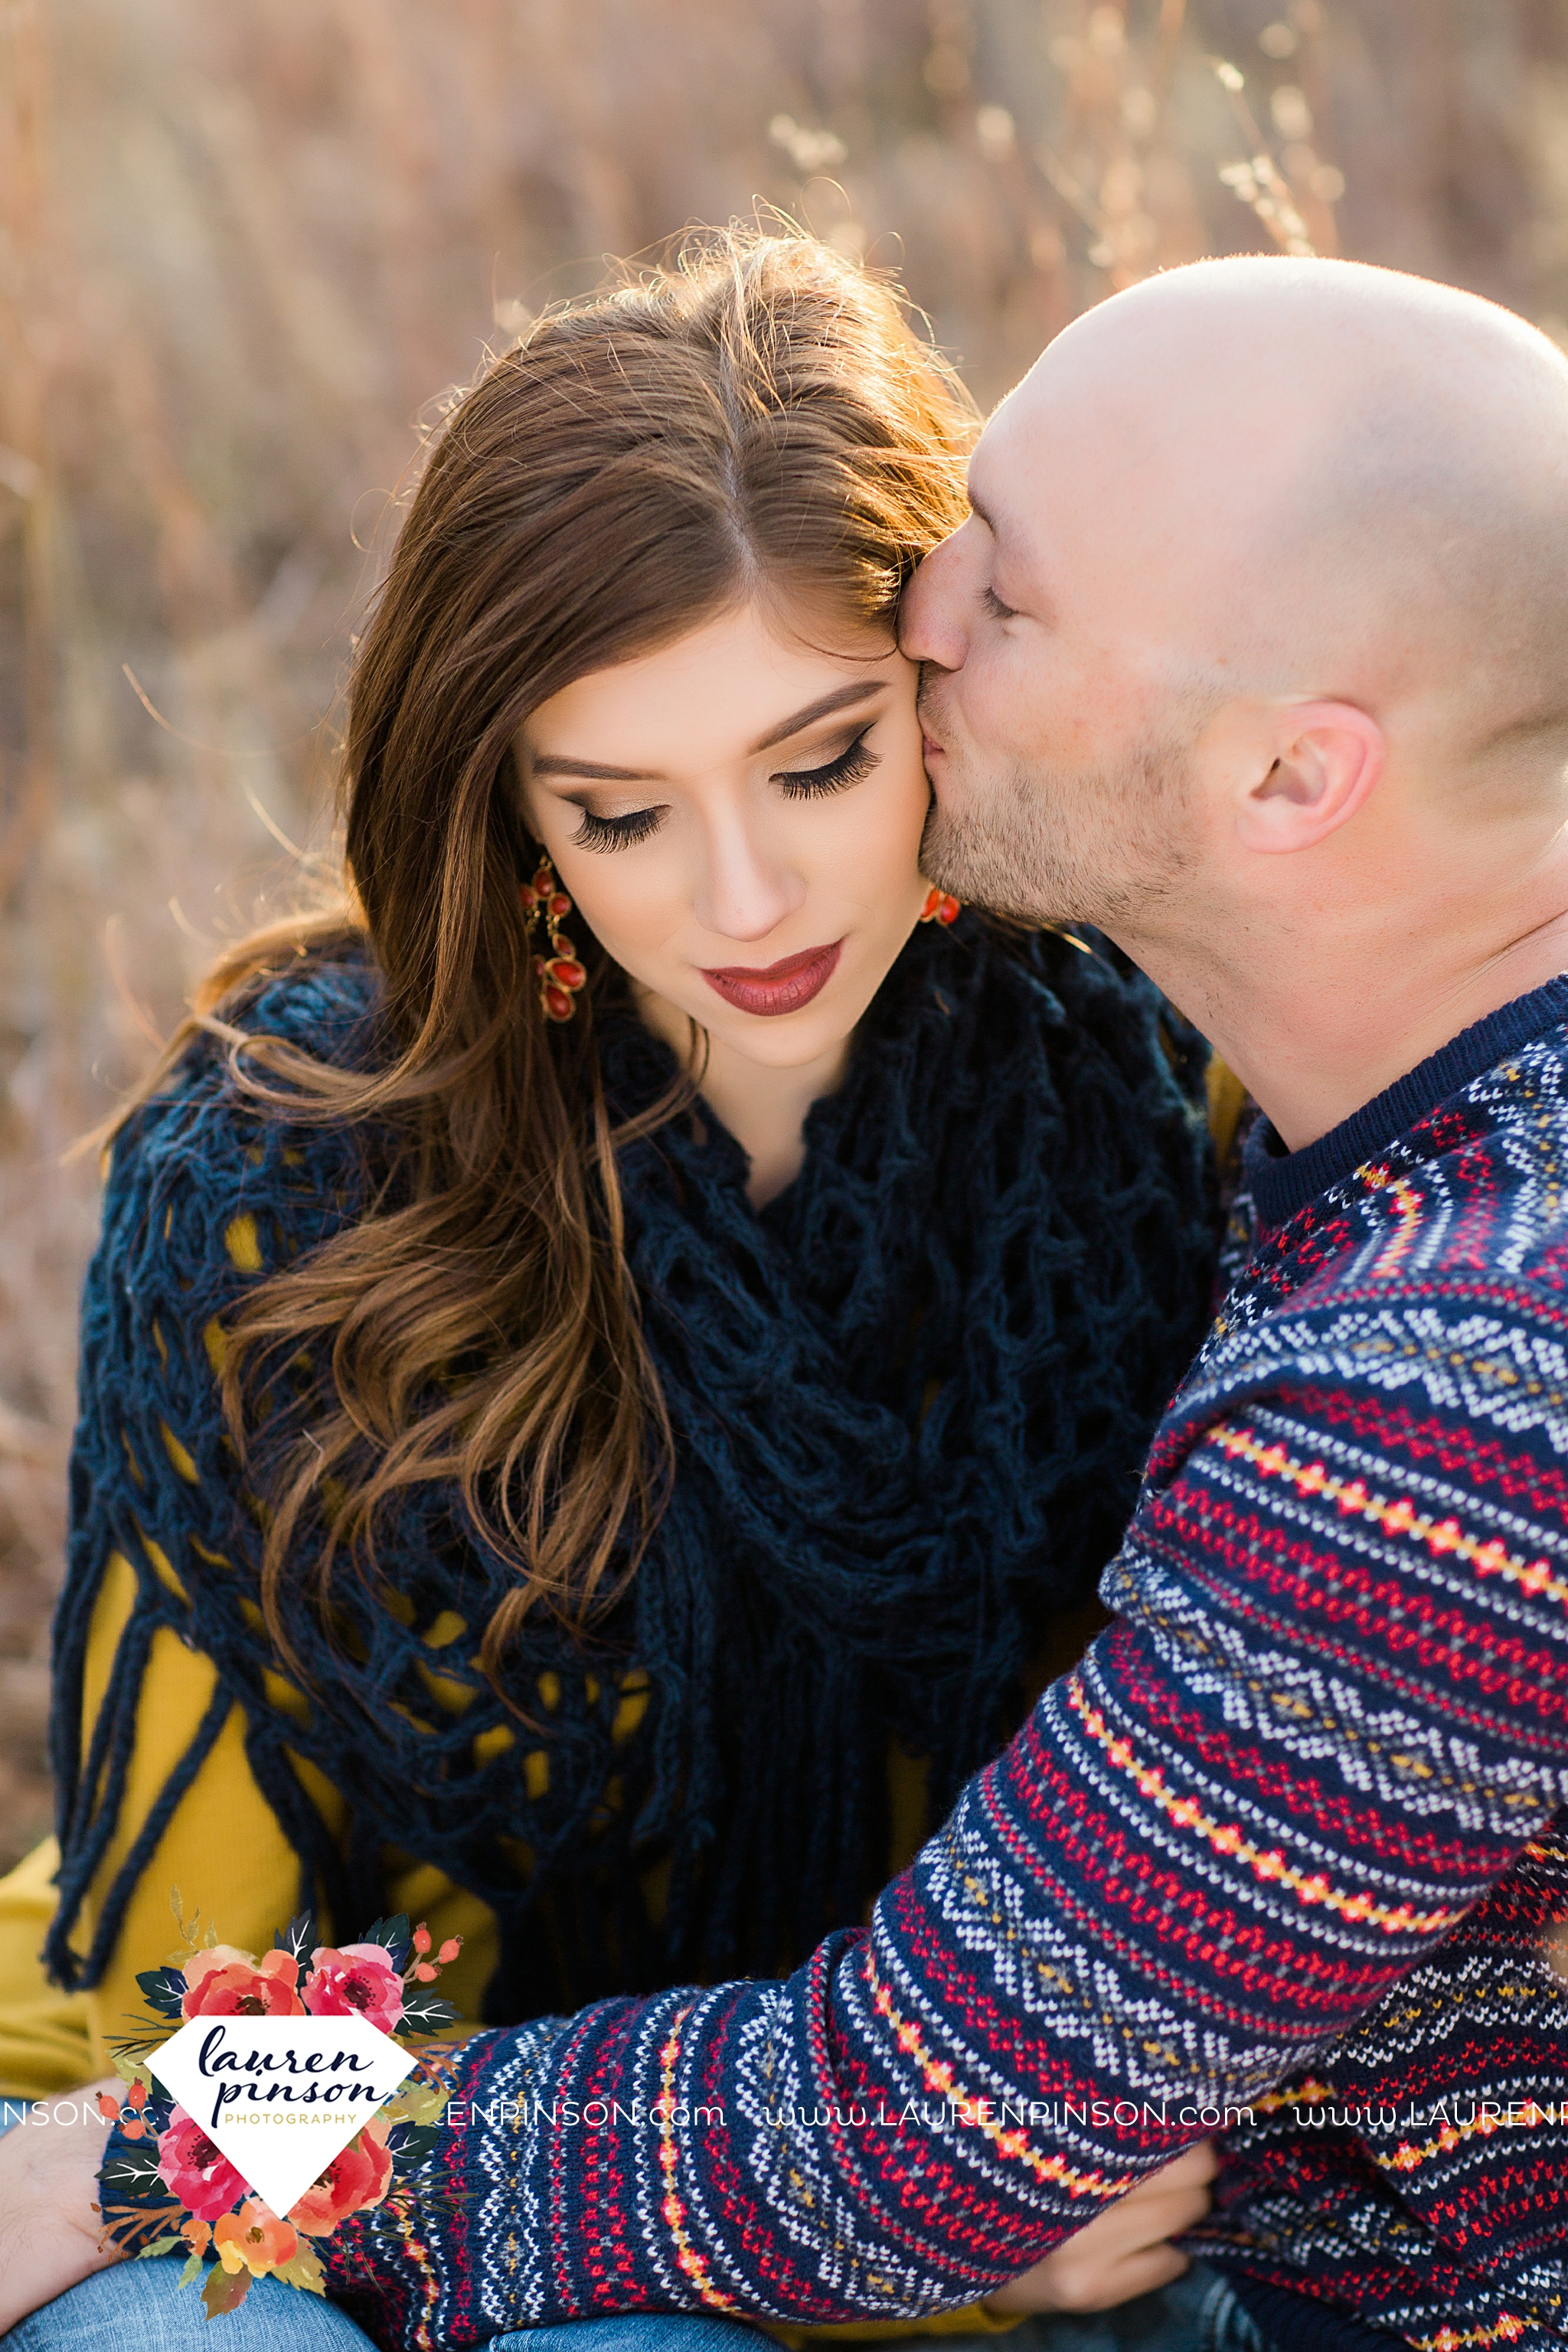 wichita-falls-texas-photographer-burkburnett-engagement-session-wichita-mountains-police-officer_4132.jpg